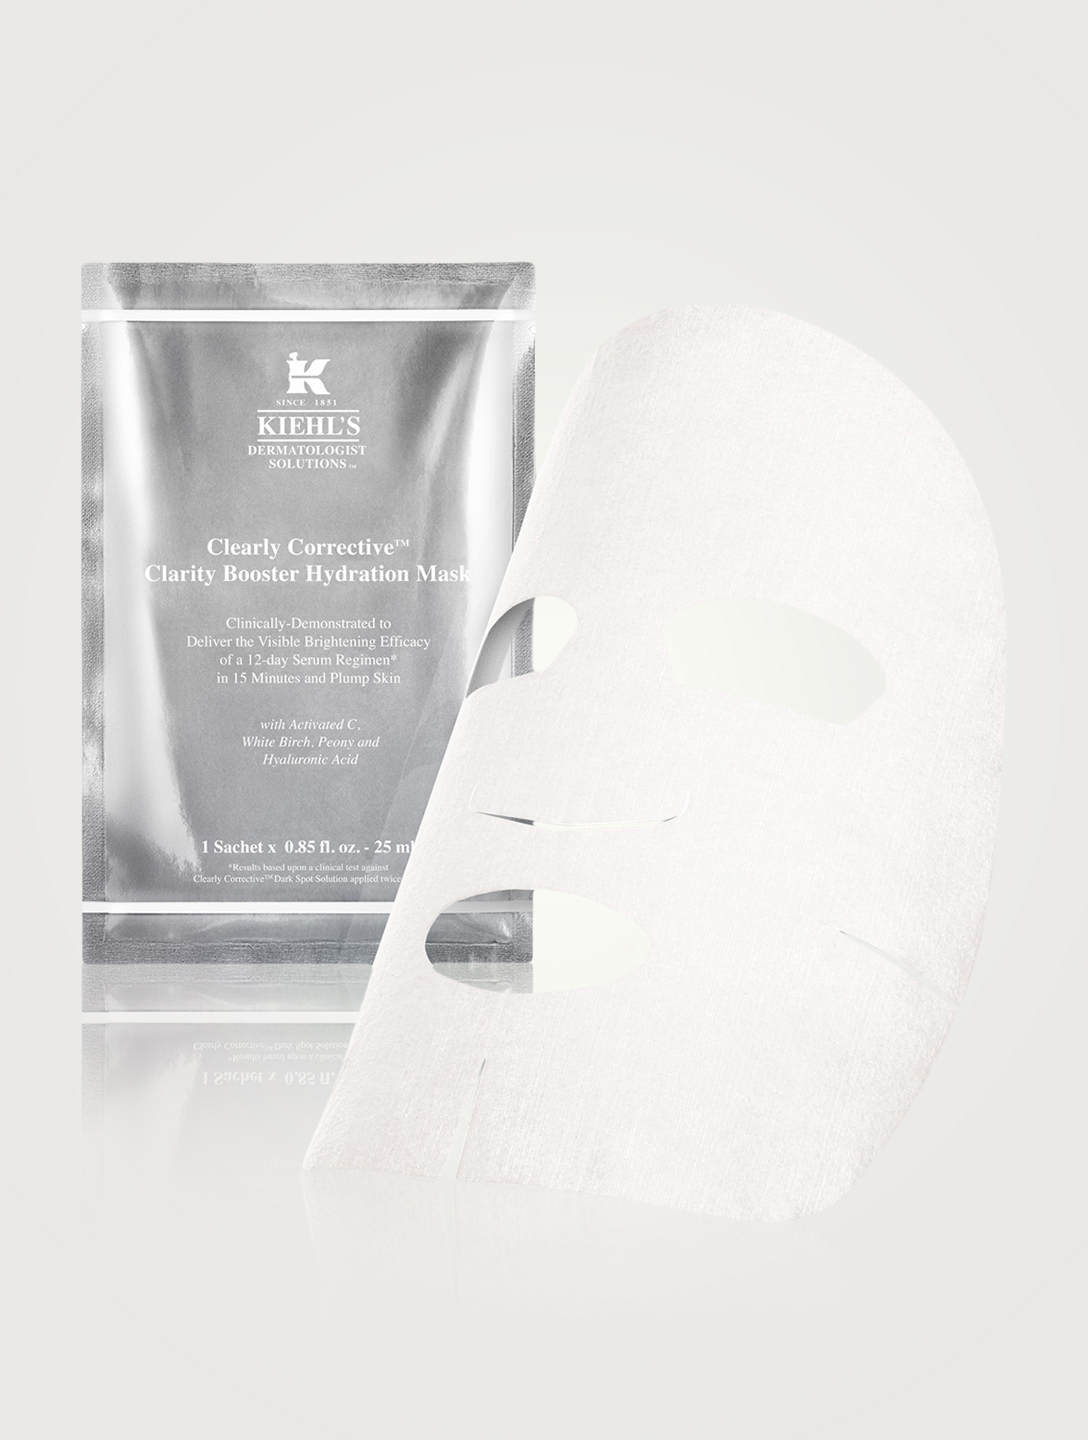 KIEHL'S Clearly Corrective™ Clarity Booster Hydration Mask x1 Beauty